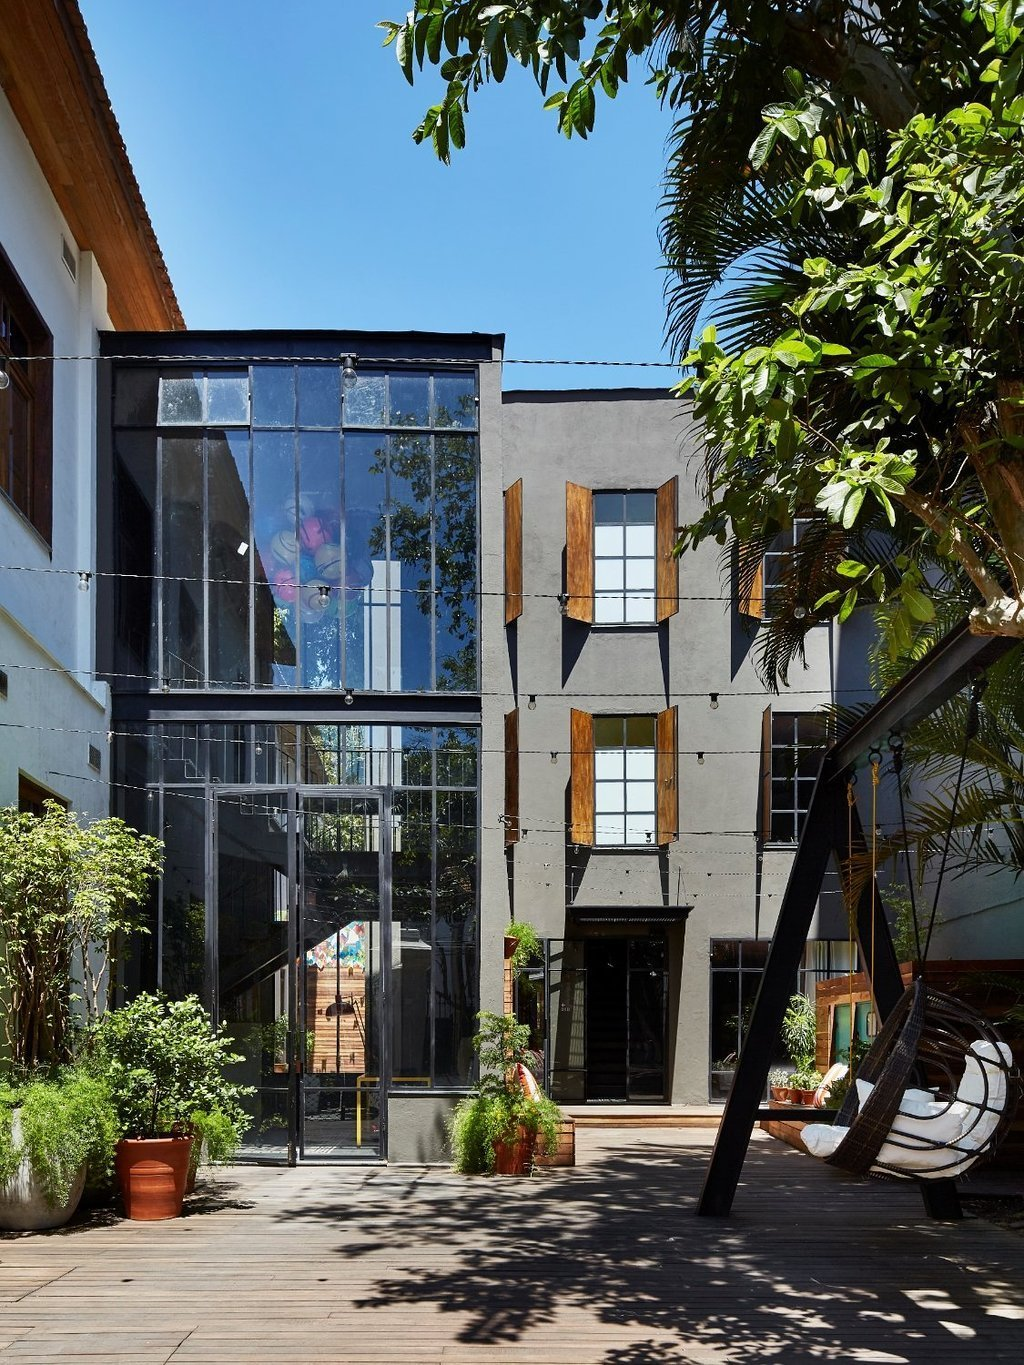 Outdoor, Decking Patio, Porch, Deck, Large Patio, Porch, Deck, Hanging Lighting, Raised Planters, Back Yard, and Trees  Dwell's Favorite Photos from Mama Shelter Rio De Janeiro